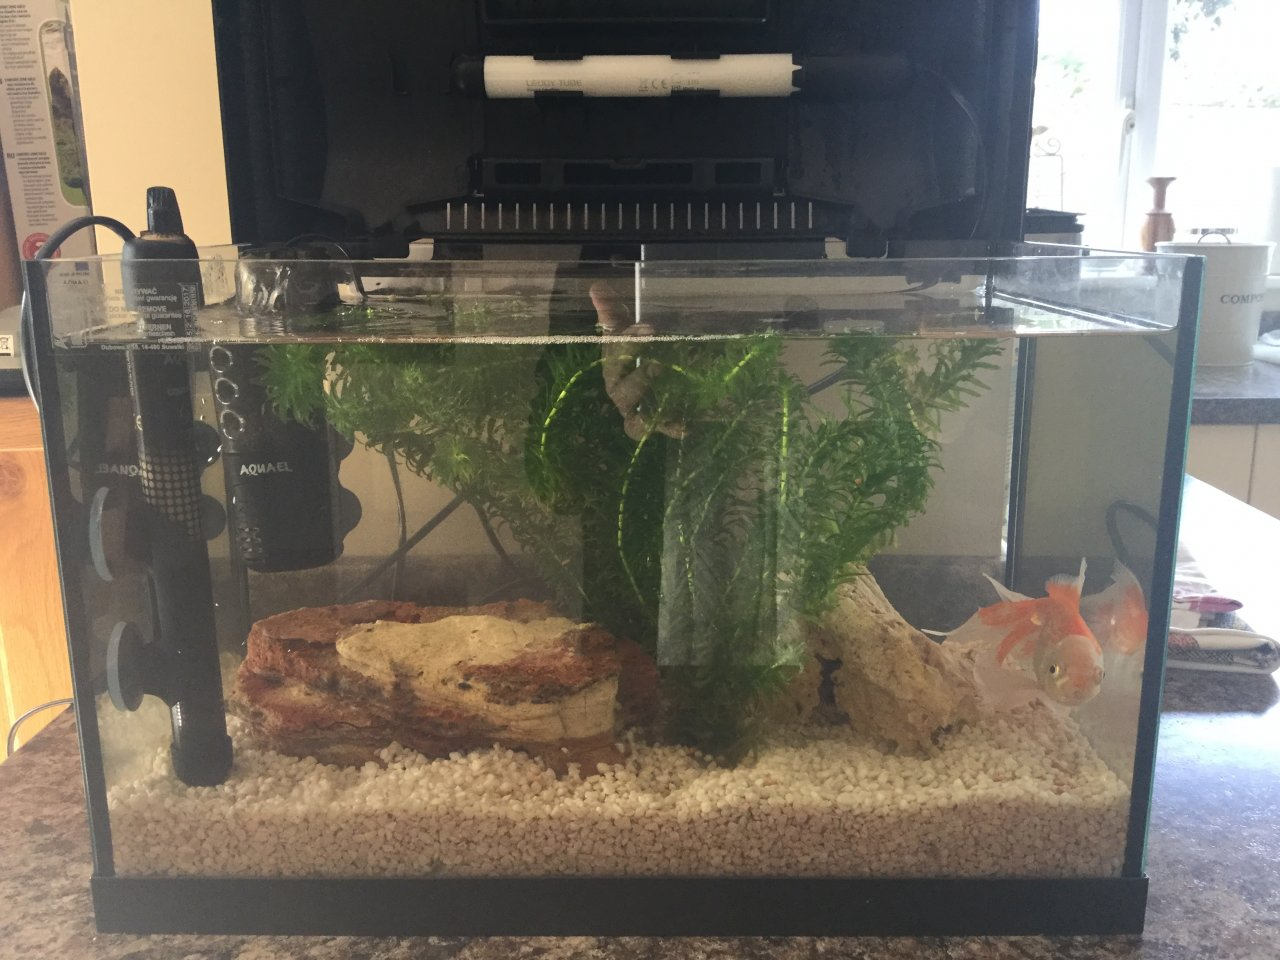 Freshwater fish no filter - I Have One Fish In A 25 Ltr Tank With A Water Filter Pump Thing Fish Has N